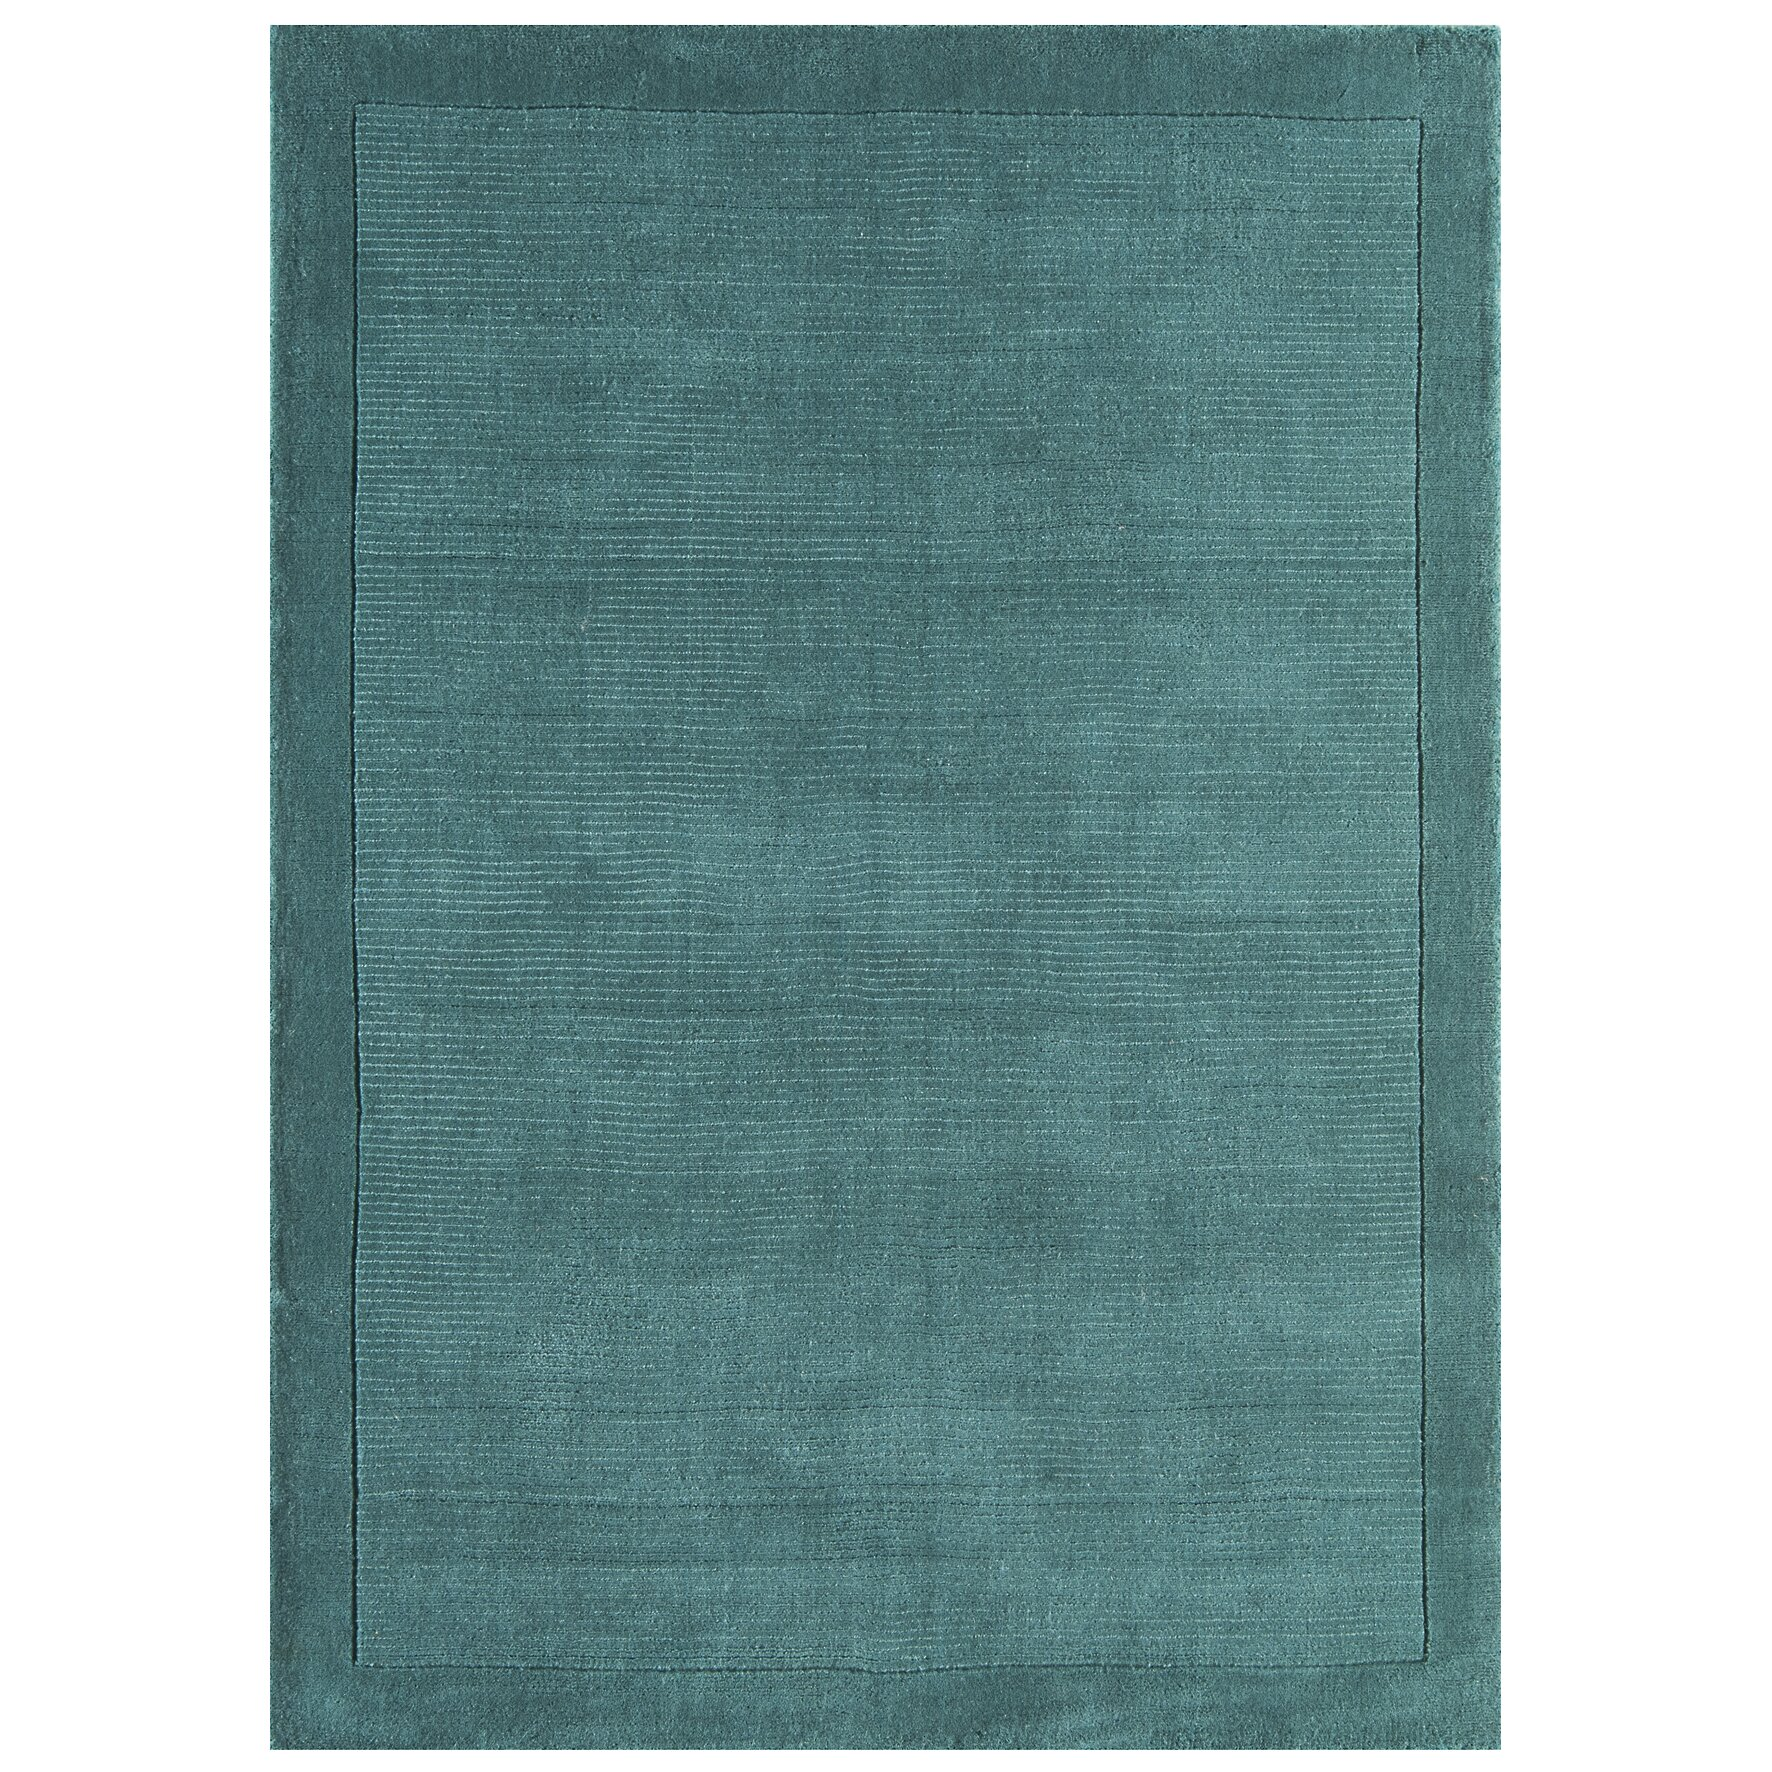 Teal Woven Rag Rug: Asiatic Carpets Ltd. York Hand-Woven Teal Area Rug